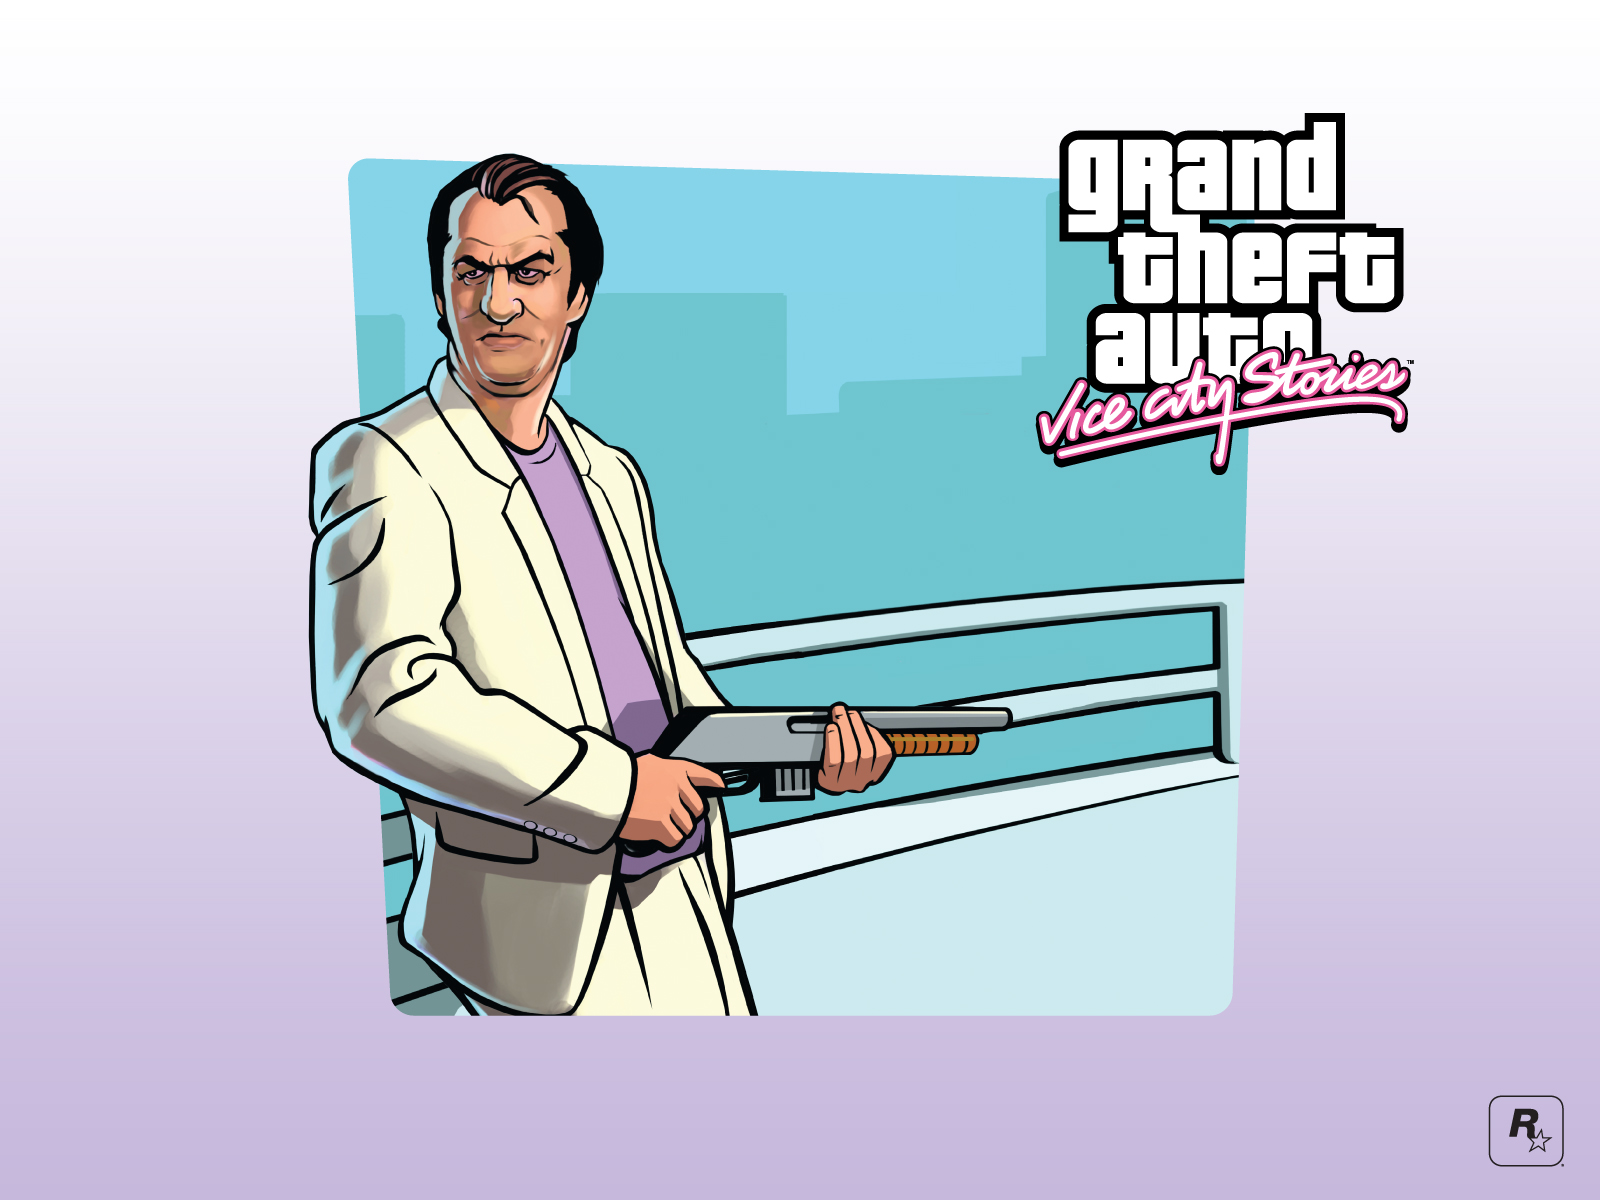 Grand Theft Auto: Vice City Stories (2007) promotional art